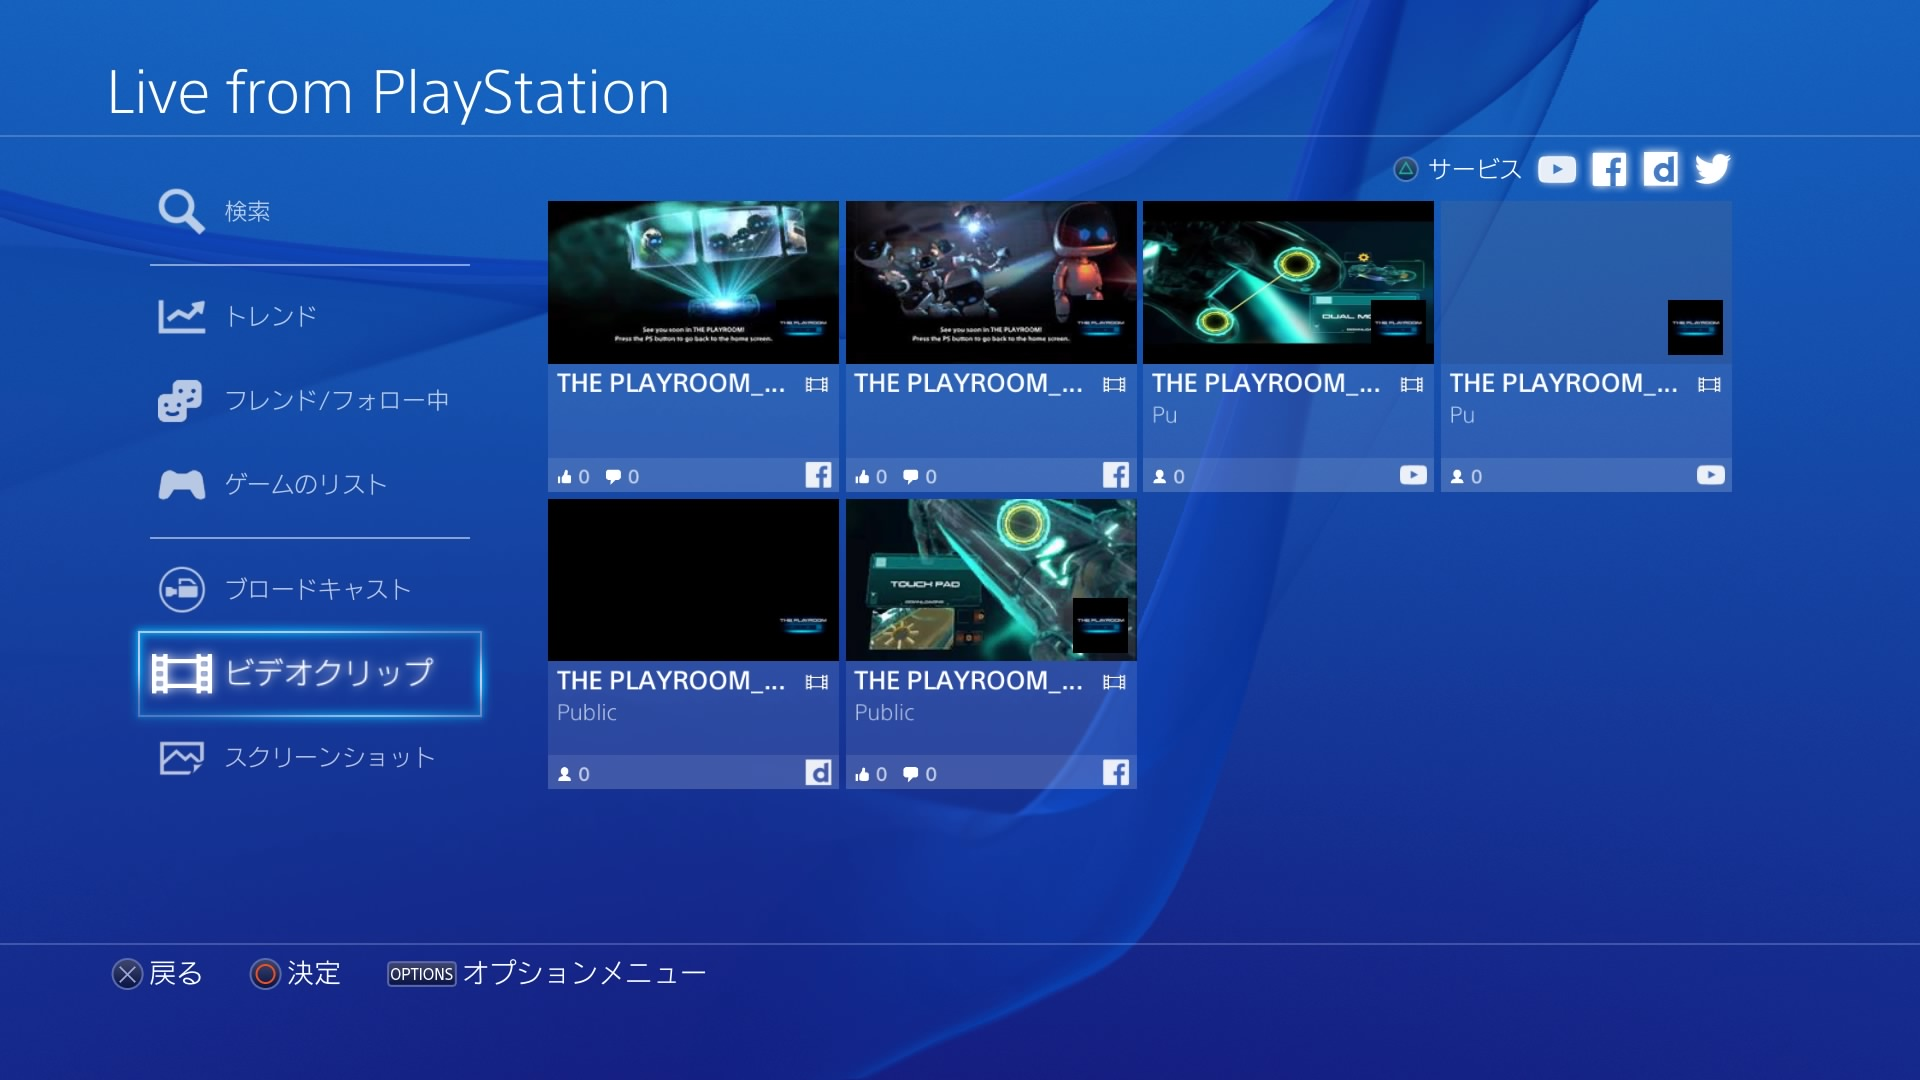 Wallpaper download ps4 - How To Use A Smartphone Or Tablet As Playstation 4 Keyboard